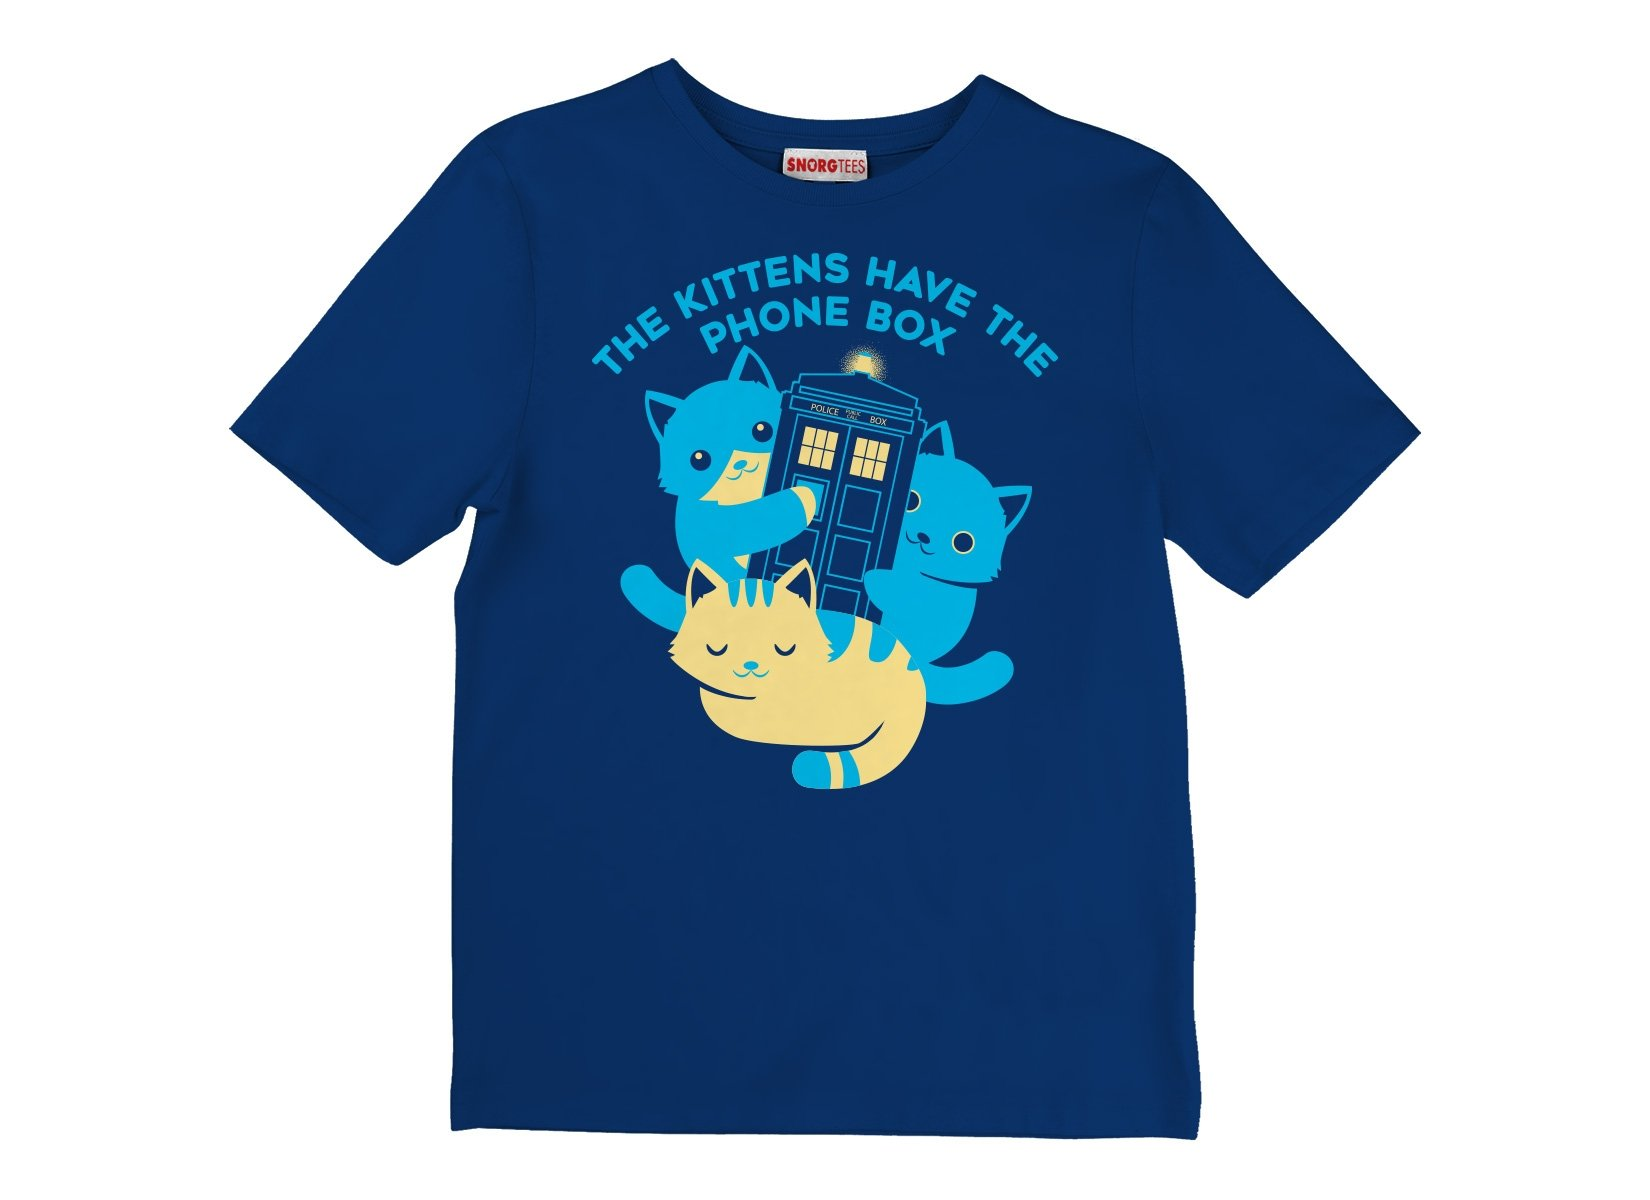 The Kittens Have The Phone Box on Kids T-Shirt